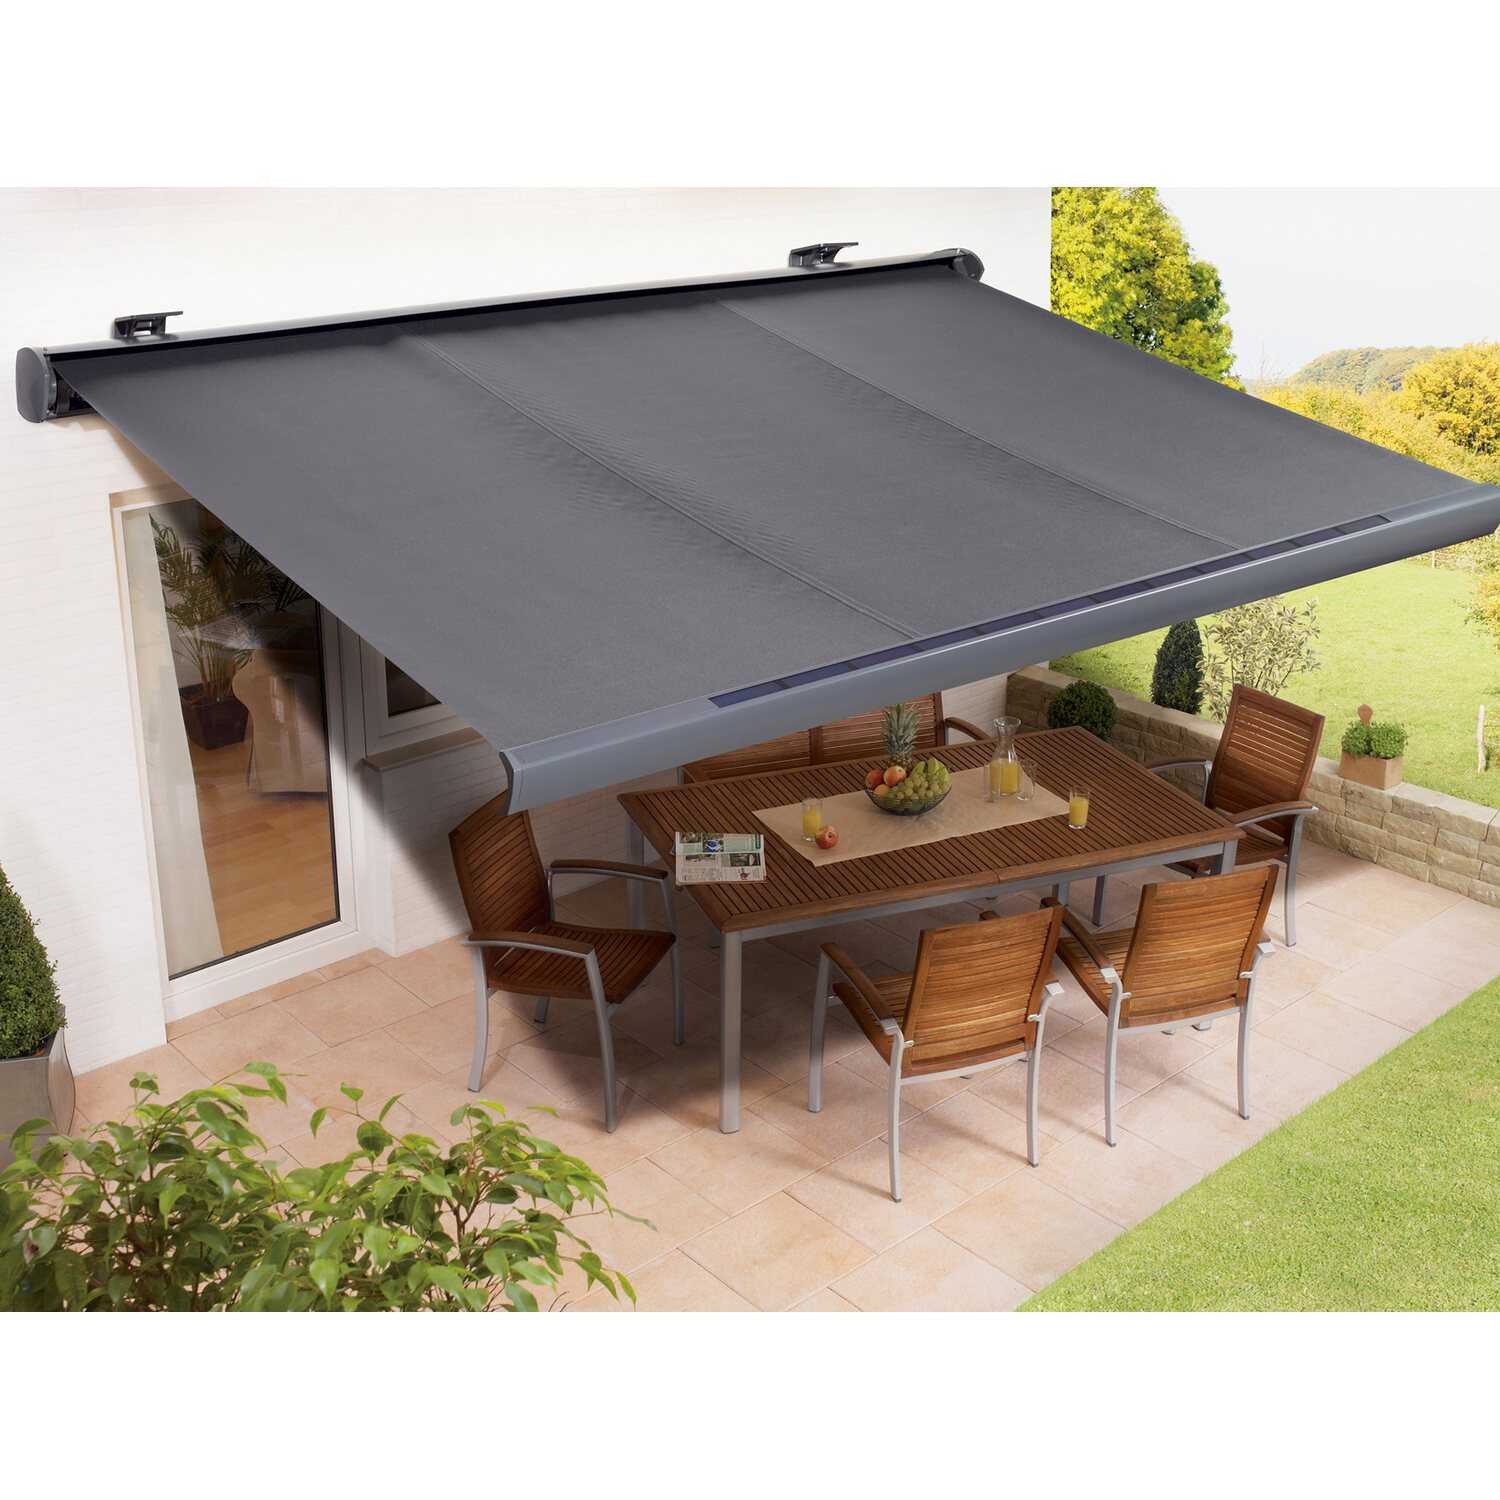 Top OBI Solarbetriebene Vollkassettenmarkise 300 cm x 200 cm Anthrazit  PS57